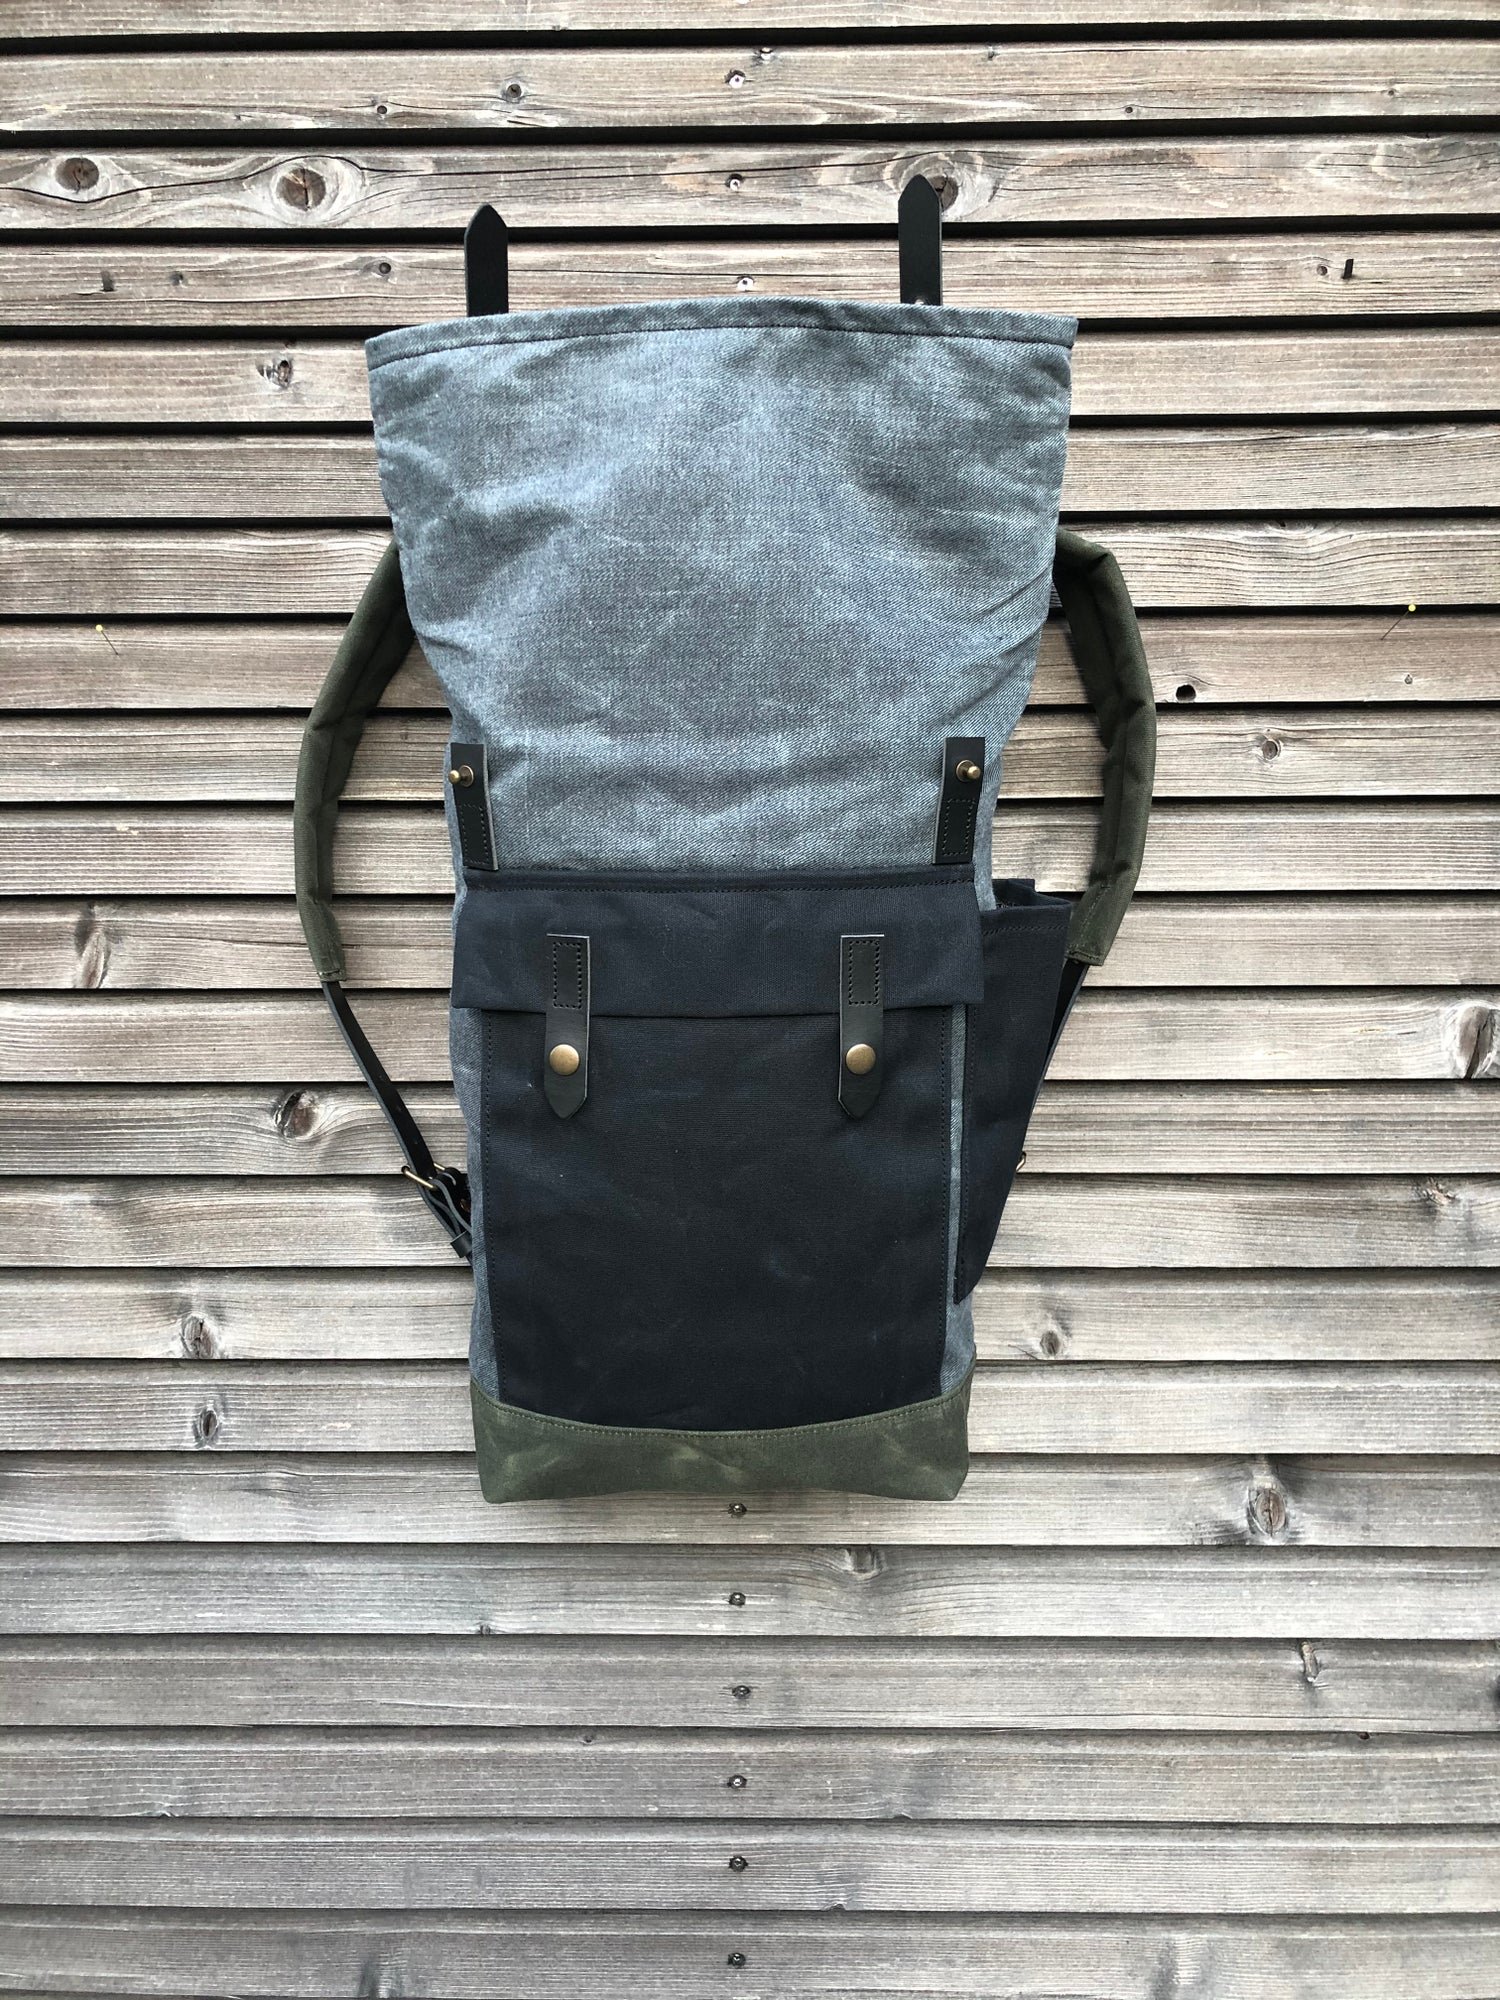 Image of Backpack in waxed denim leather Backpack medium size / Commuter backpack / Hipster backpack